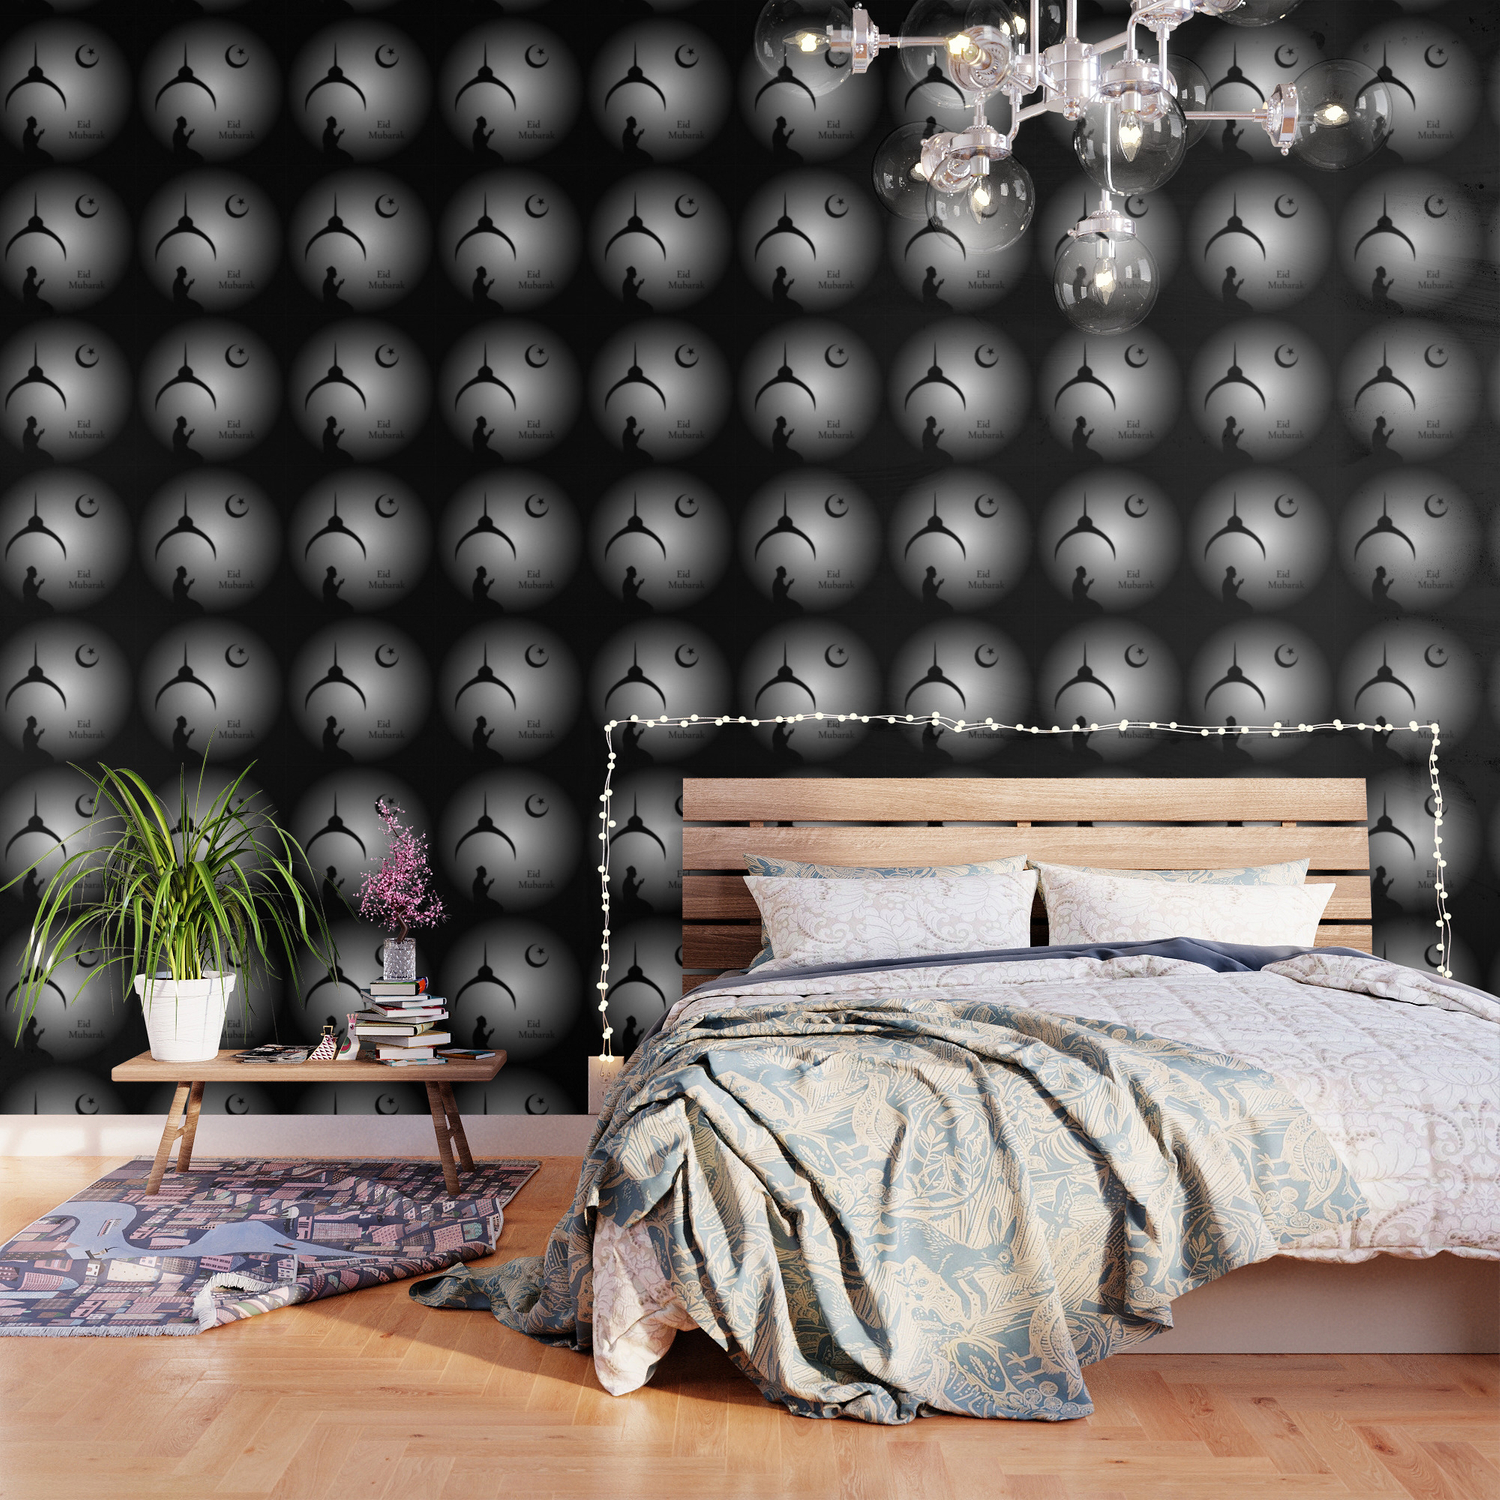 Man Praying Under The Moon Wallpaper By Shawlinmohd Society6